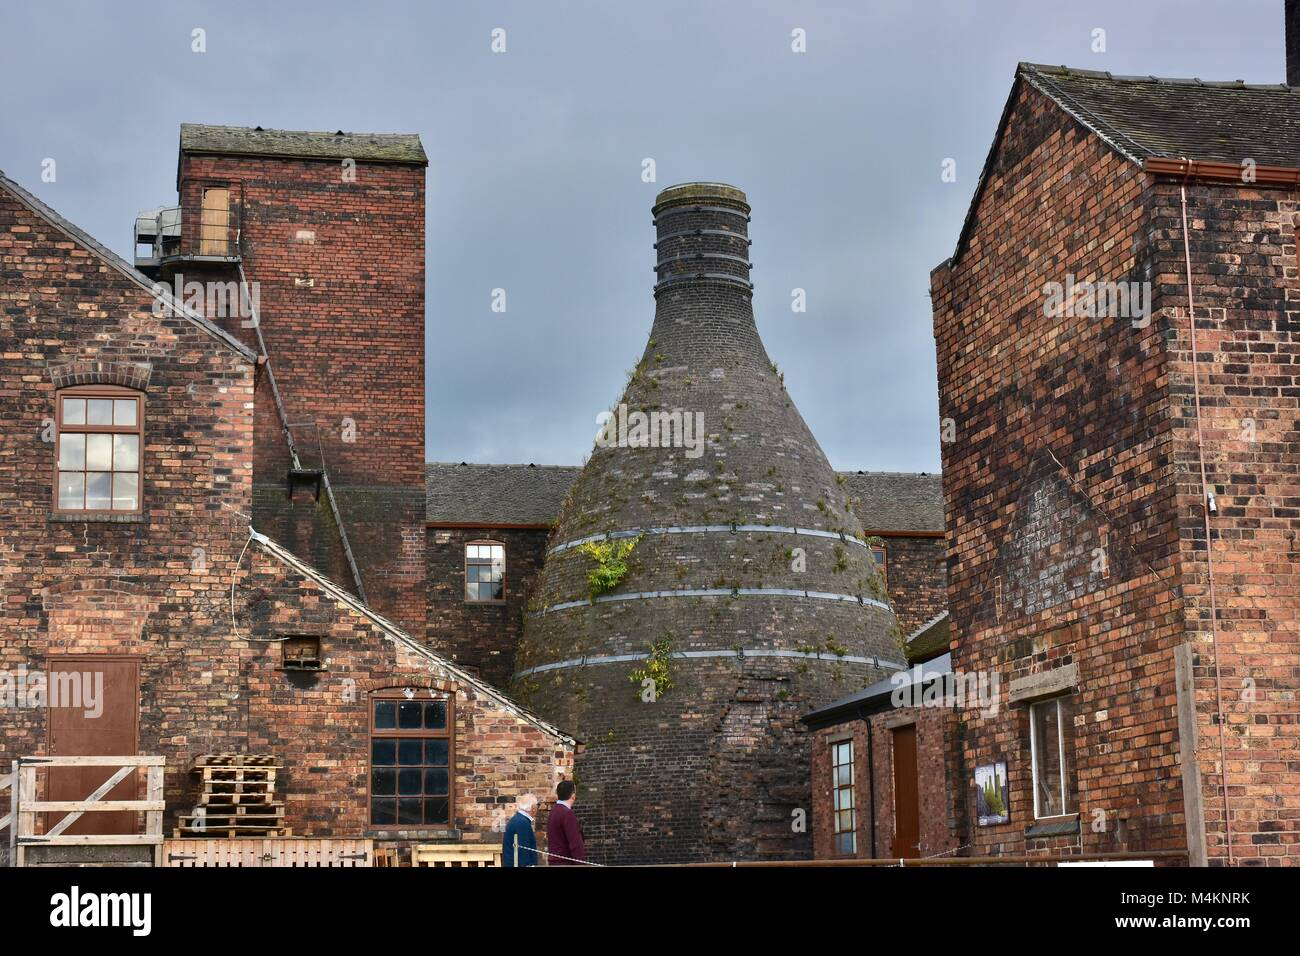 Bottle oven in Middleport potteries on banks of Trent and Mersey canal,Stoke on Trent,Staffordshire,United Kingdom.British - Stock Image